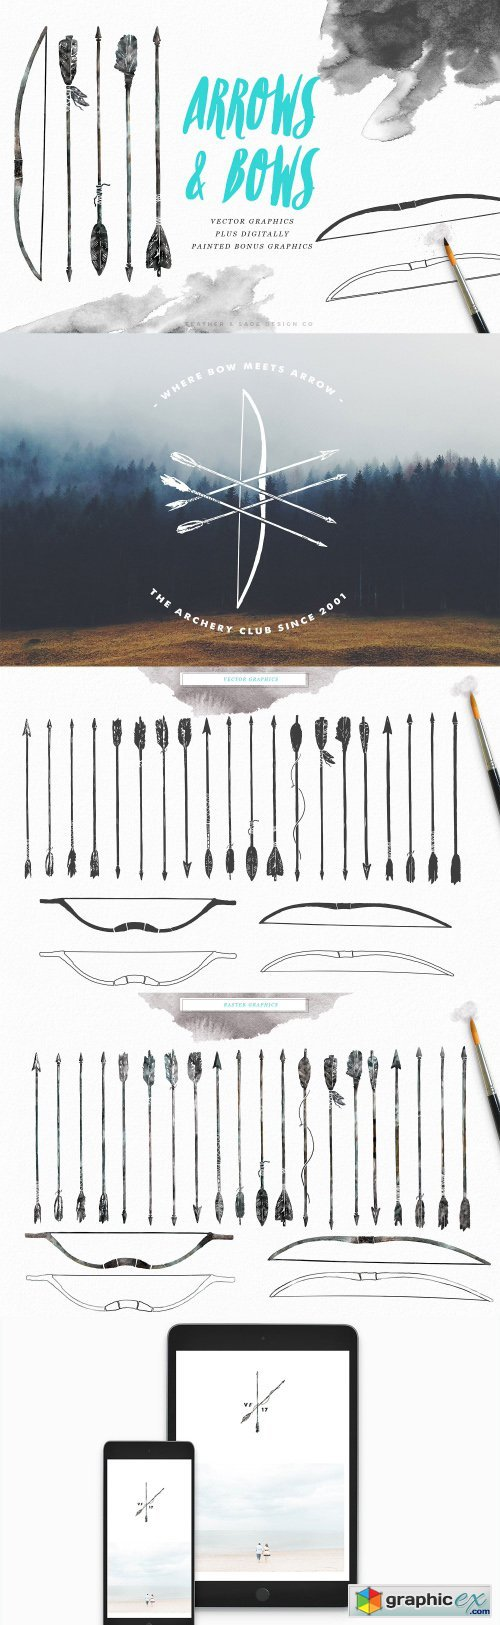 [30% OFF] Hand-Drawn Arrows & Bows